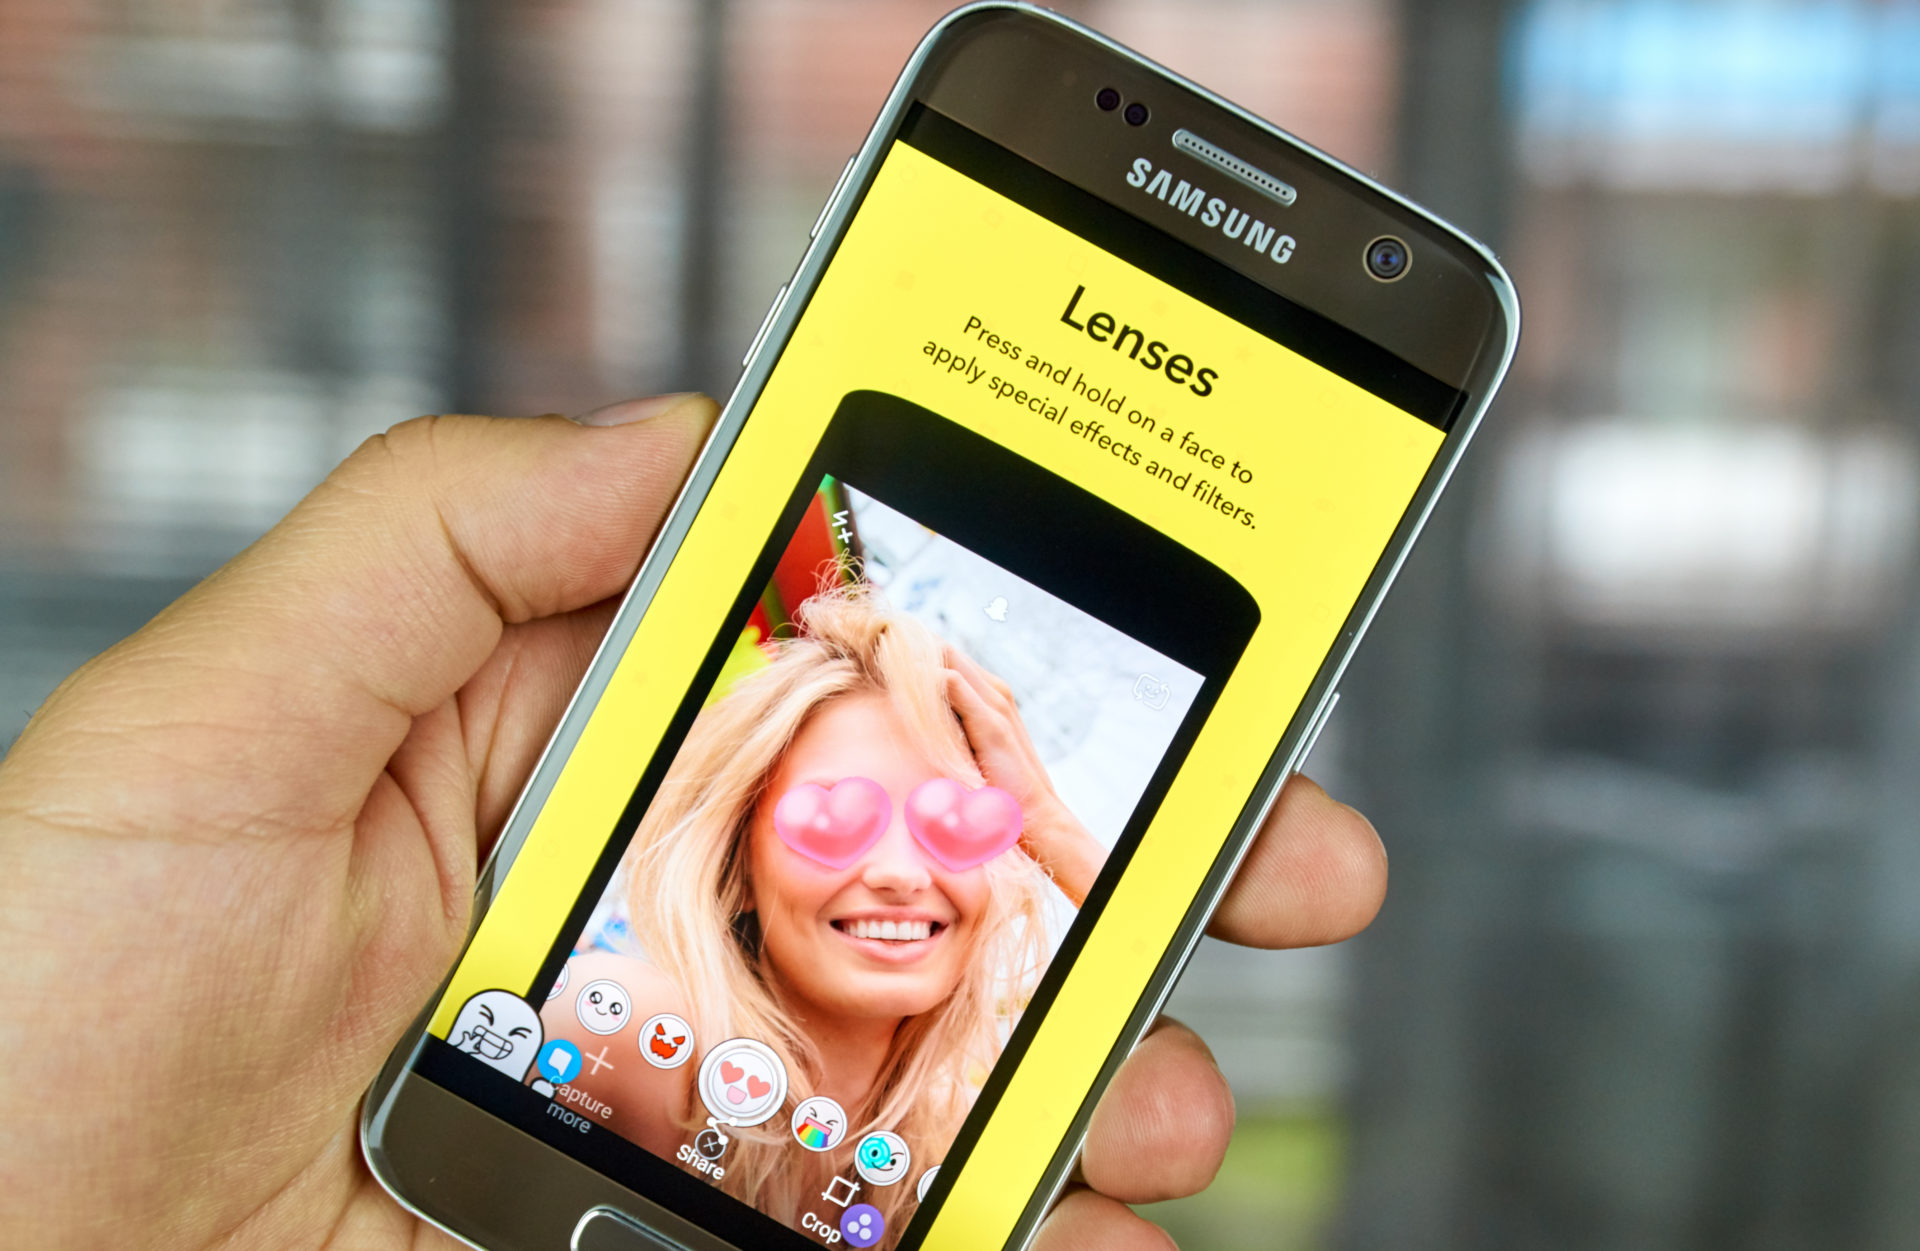 Could dating apps be key to Snapchat's happy ending?